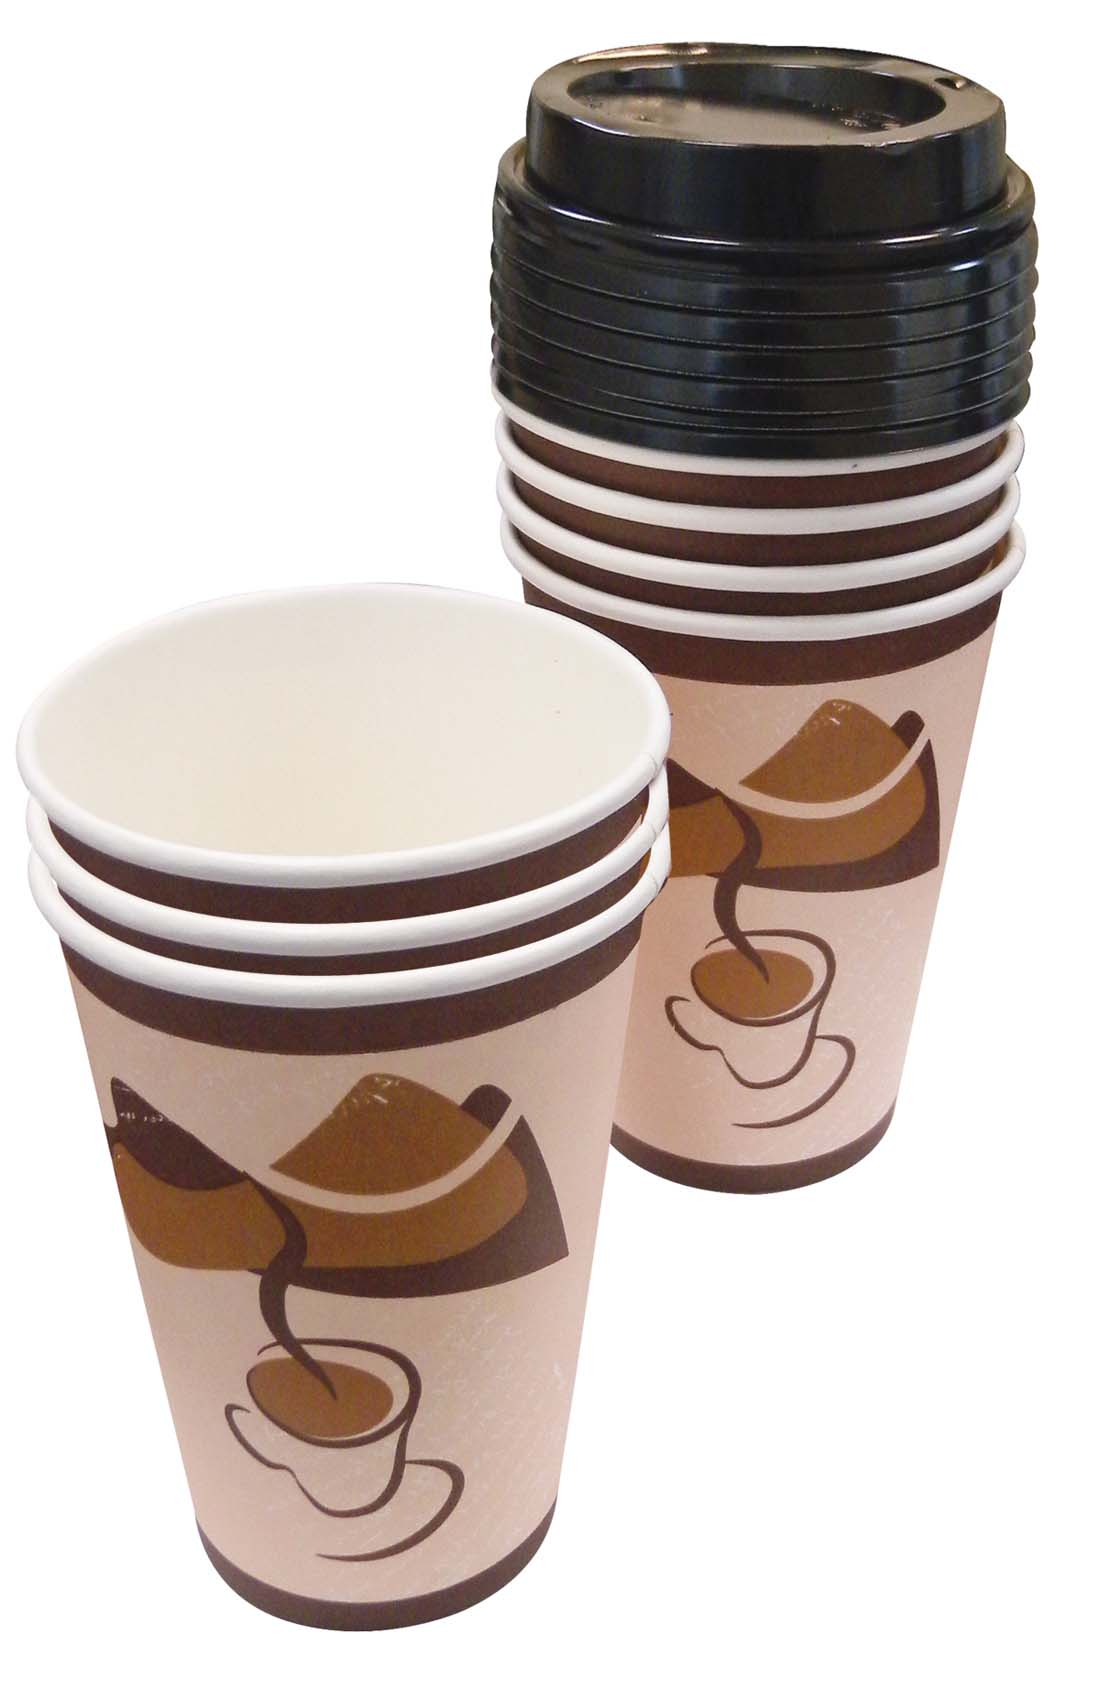 View HOT CUPS 16 PK 8 OZ - 8 CUPS + 8 LIDS